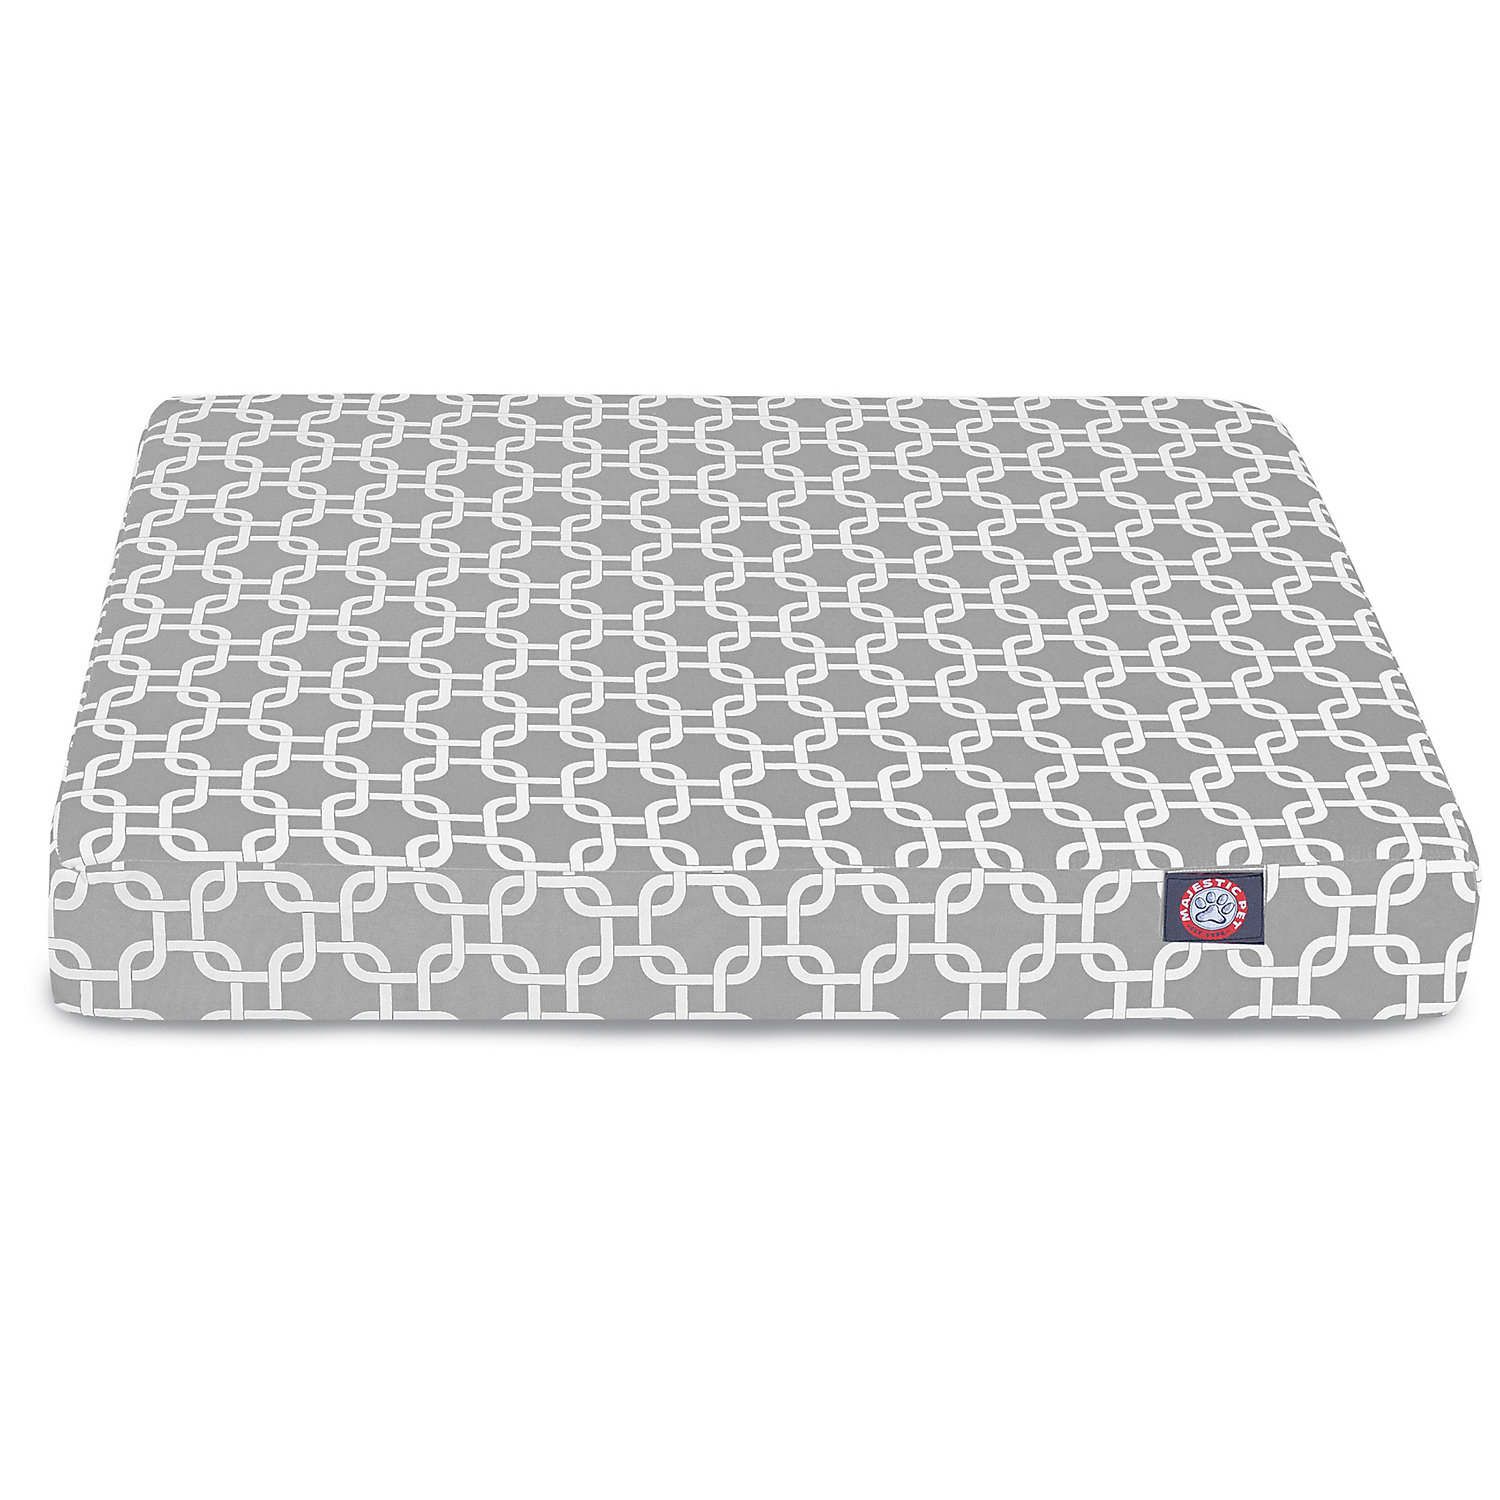 Majestic Pet Gray Links Orthopedic Memory Foam Rectangle Dog Bed 27 L x 20 W Small Grey